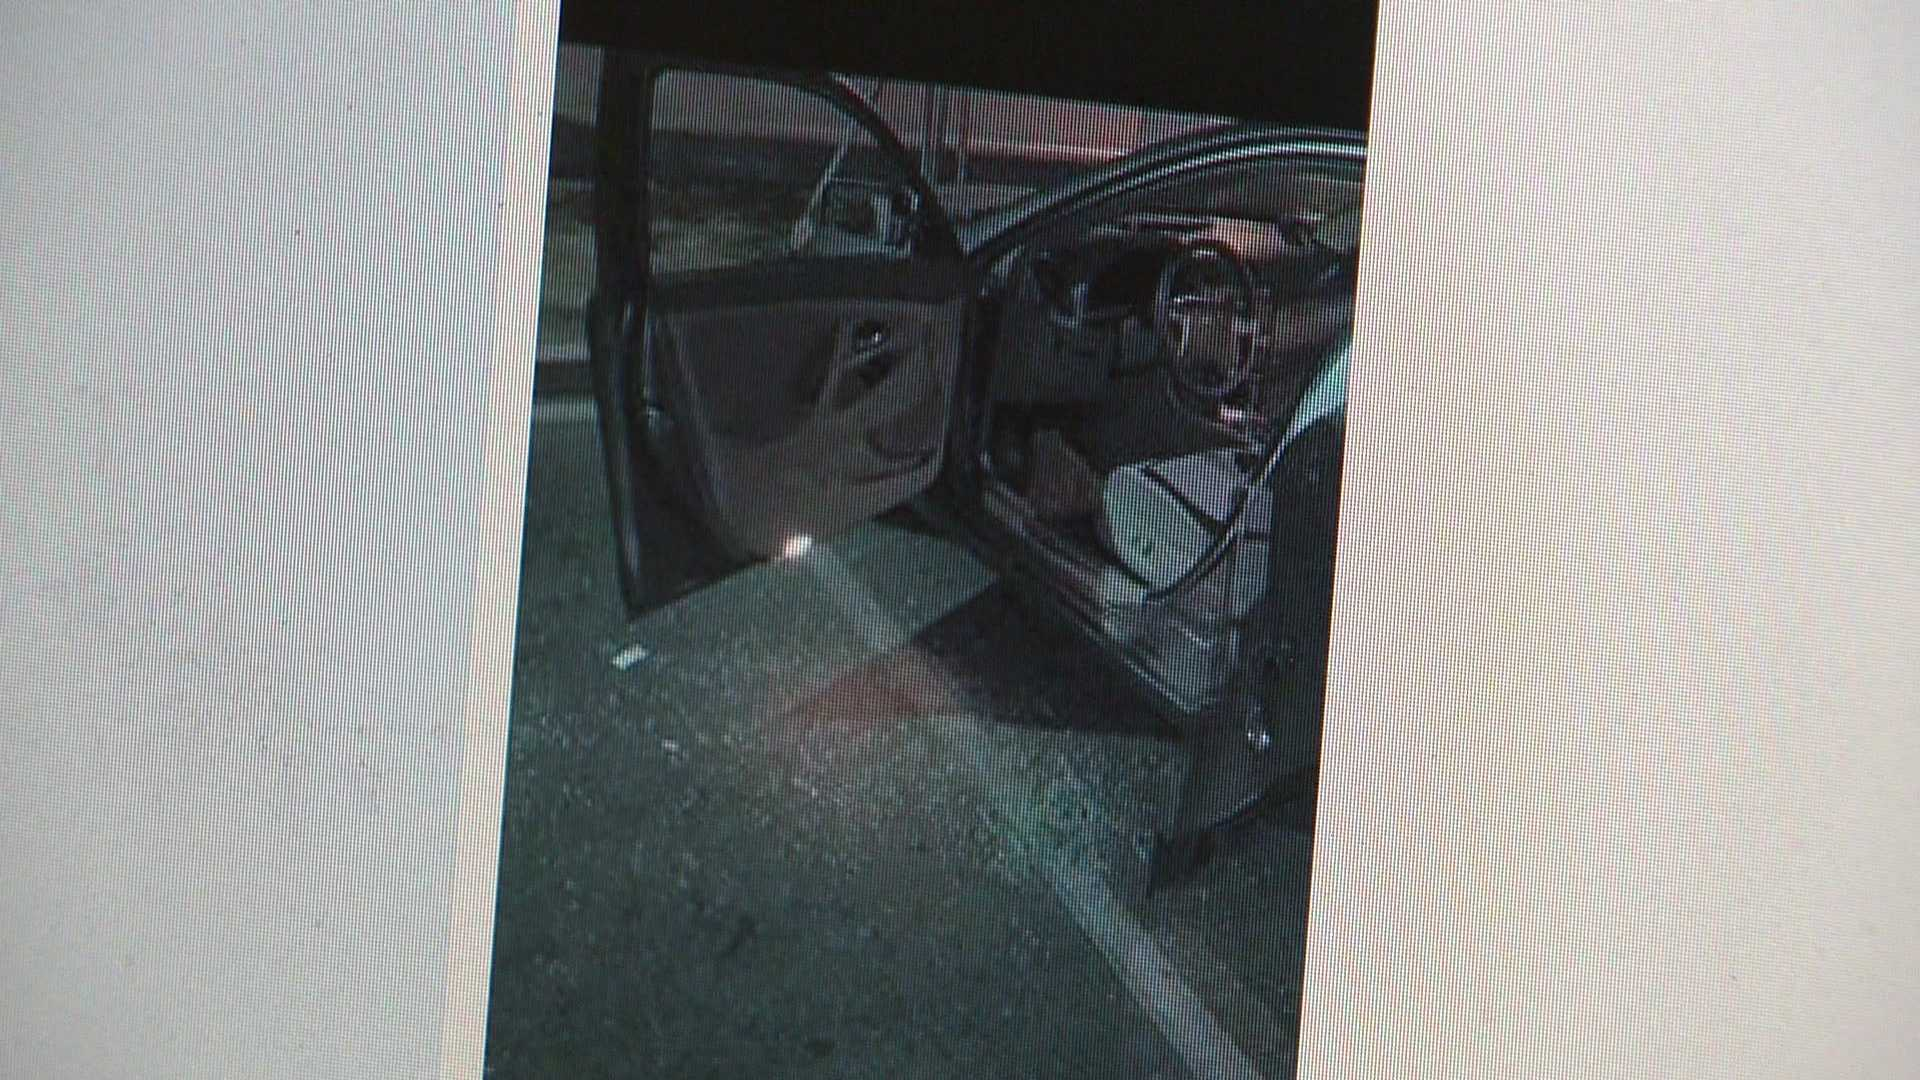 A photo posted on the South Sacramento Neighborhood Watch group shows a car with a broken glass window.